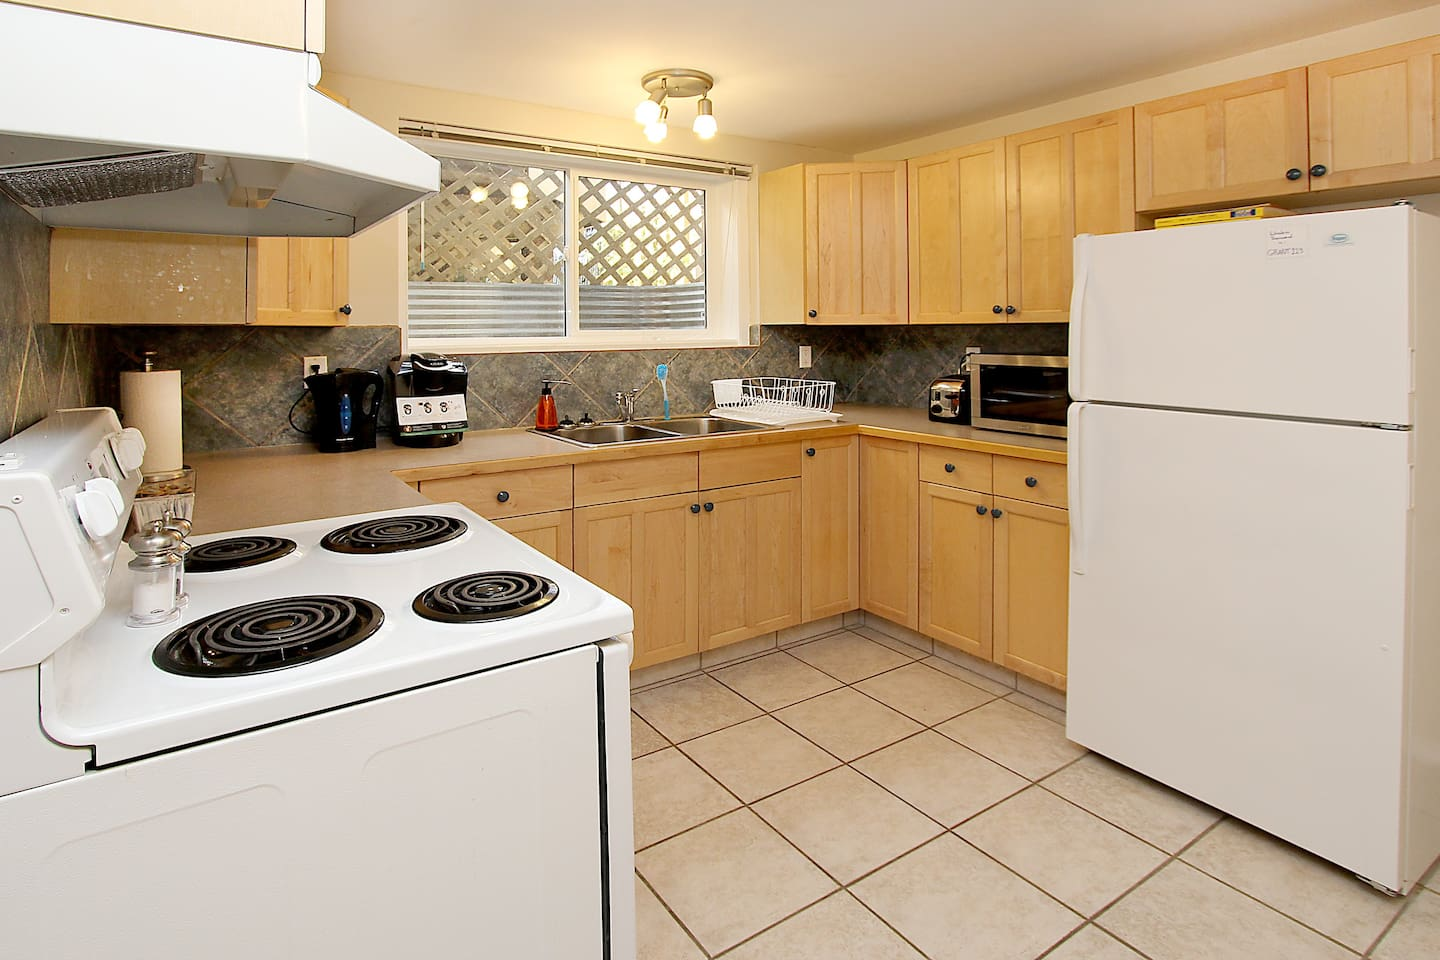 Kitchen with amenities such as coffee/tea, stove, fridge &  microwave.